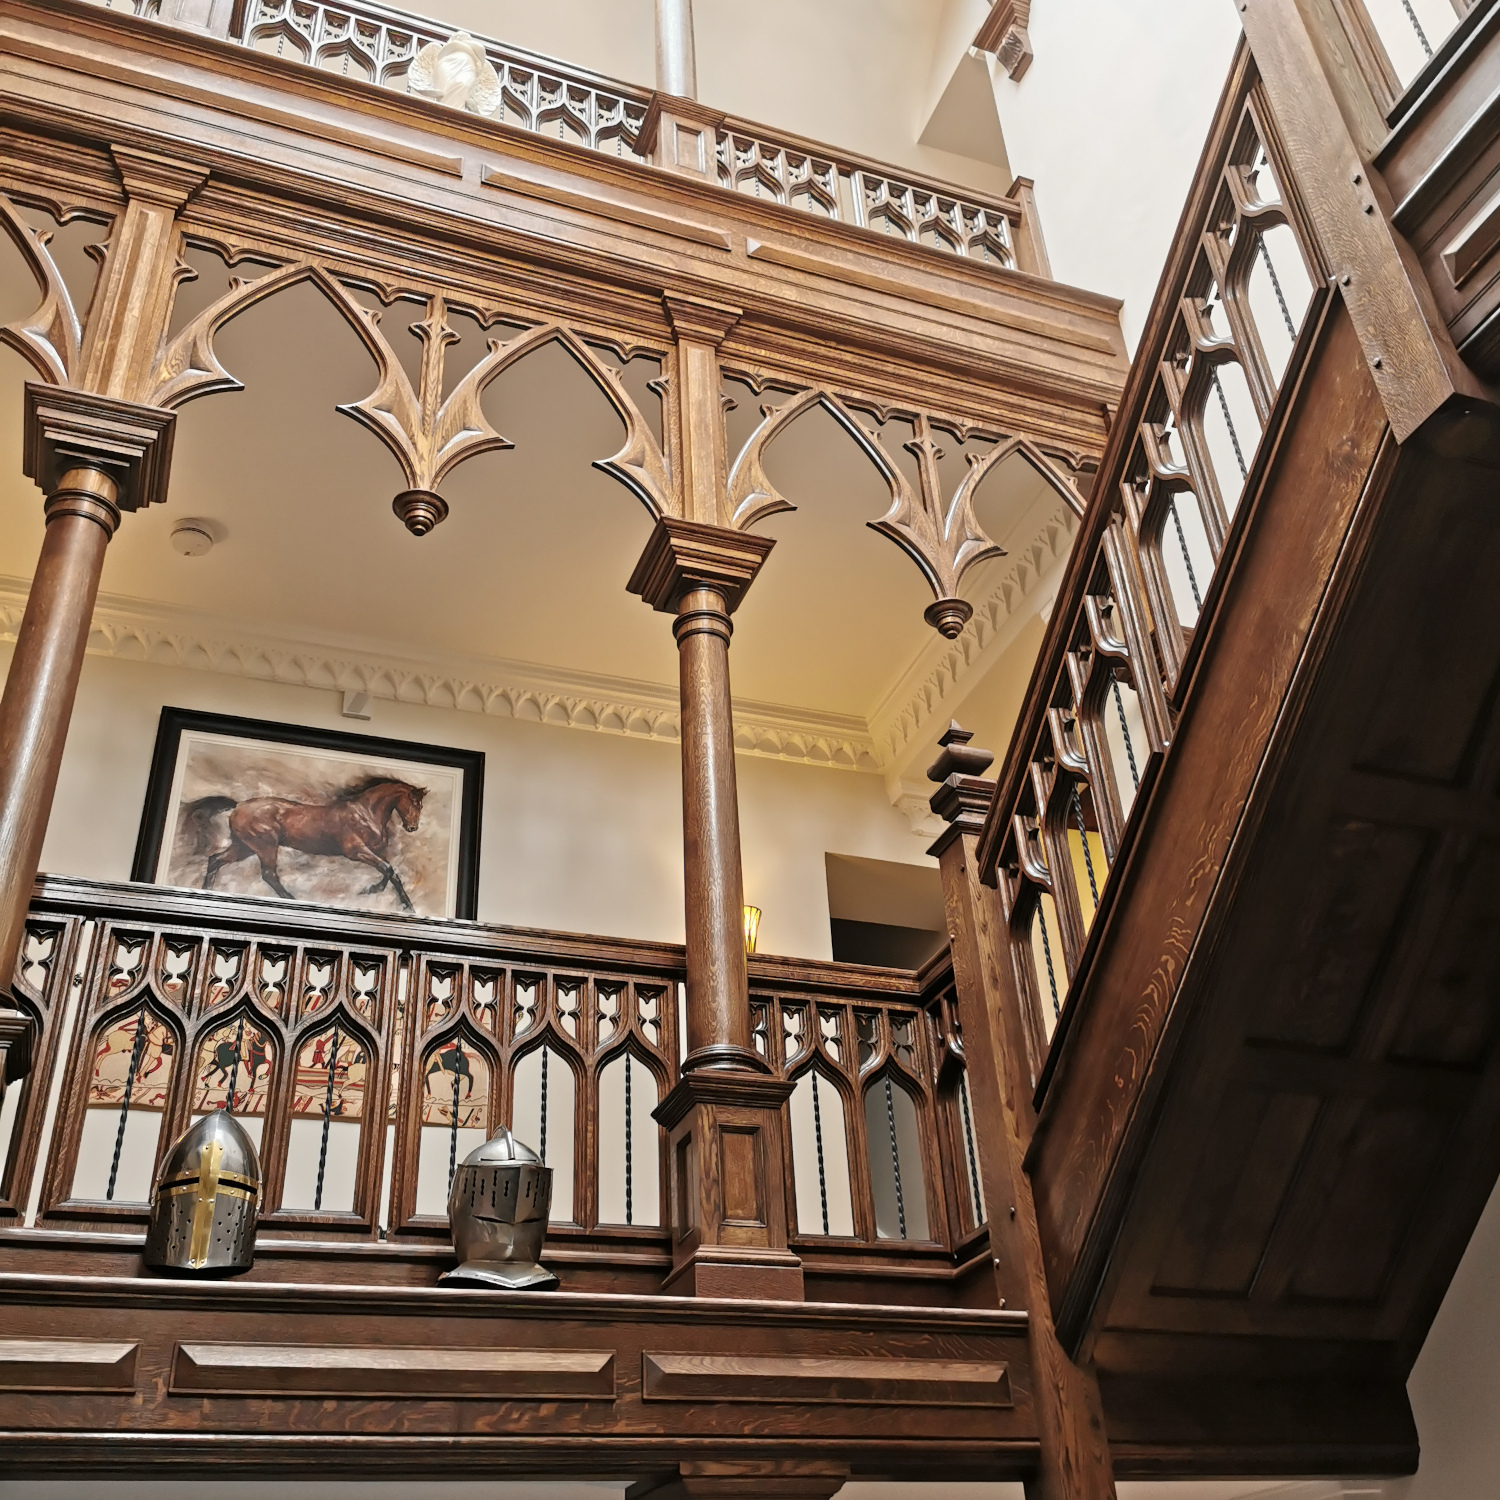 Solid oak Gothic style staircase with double height gallery